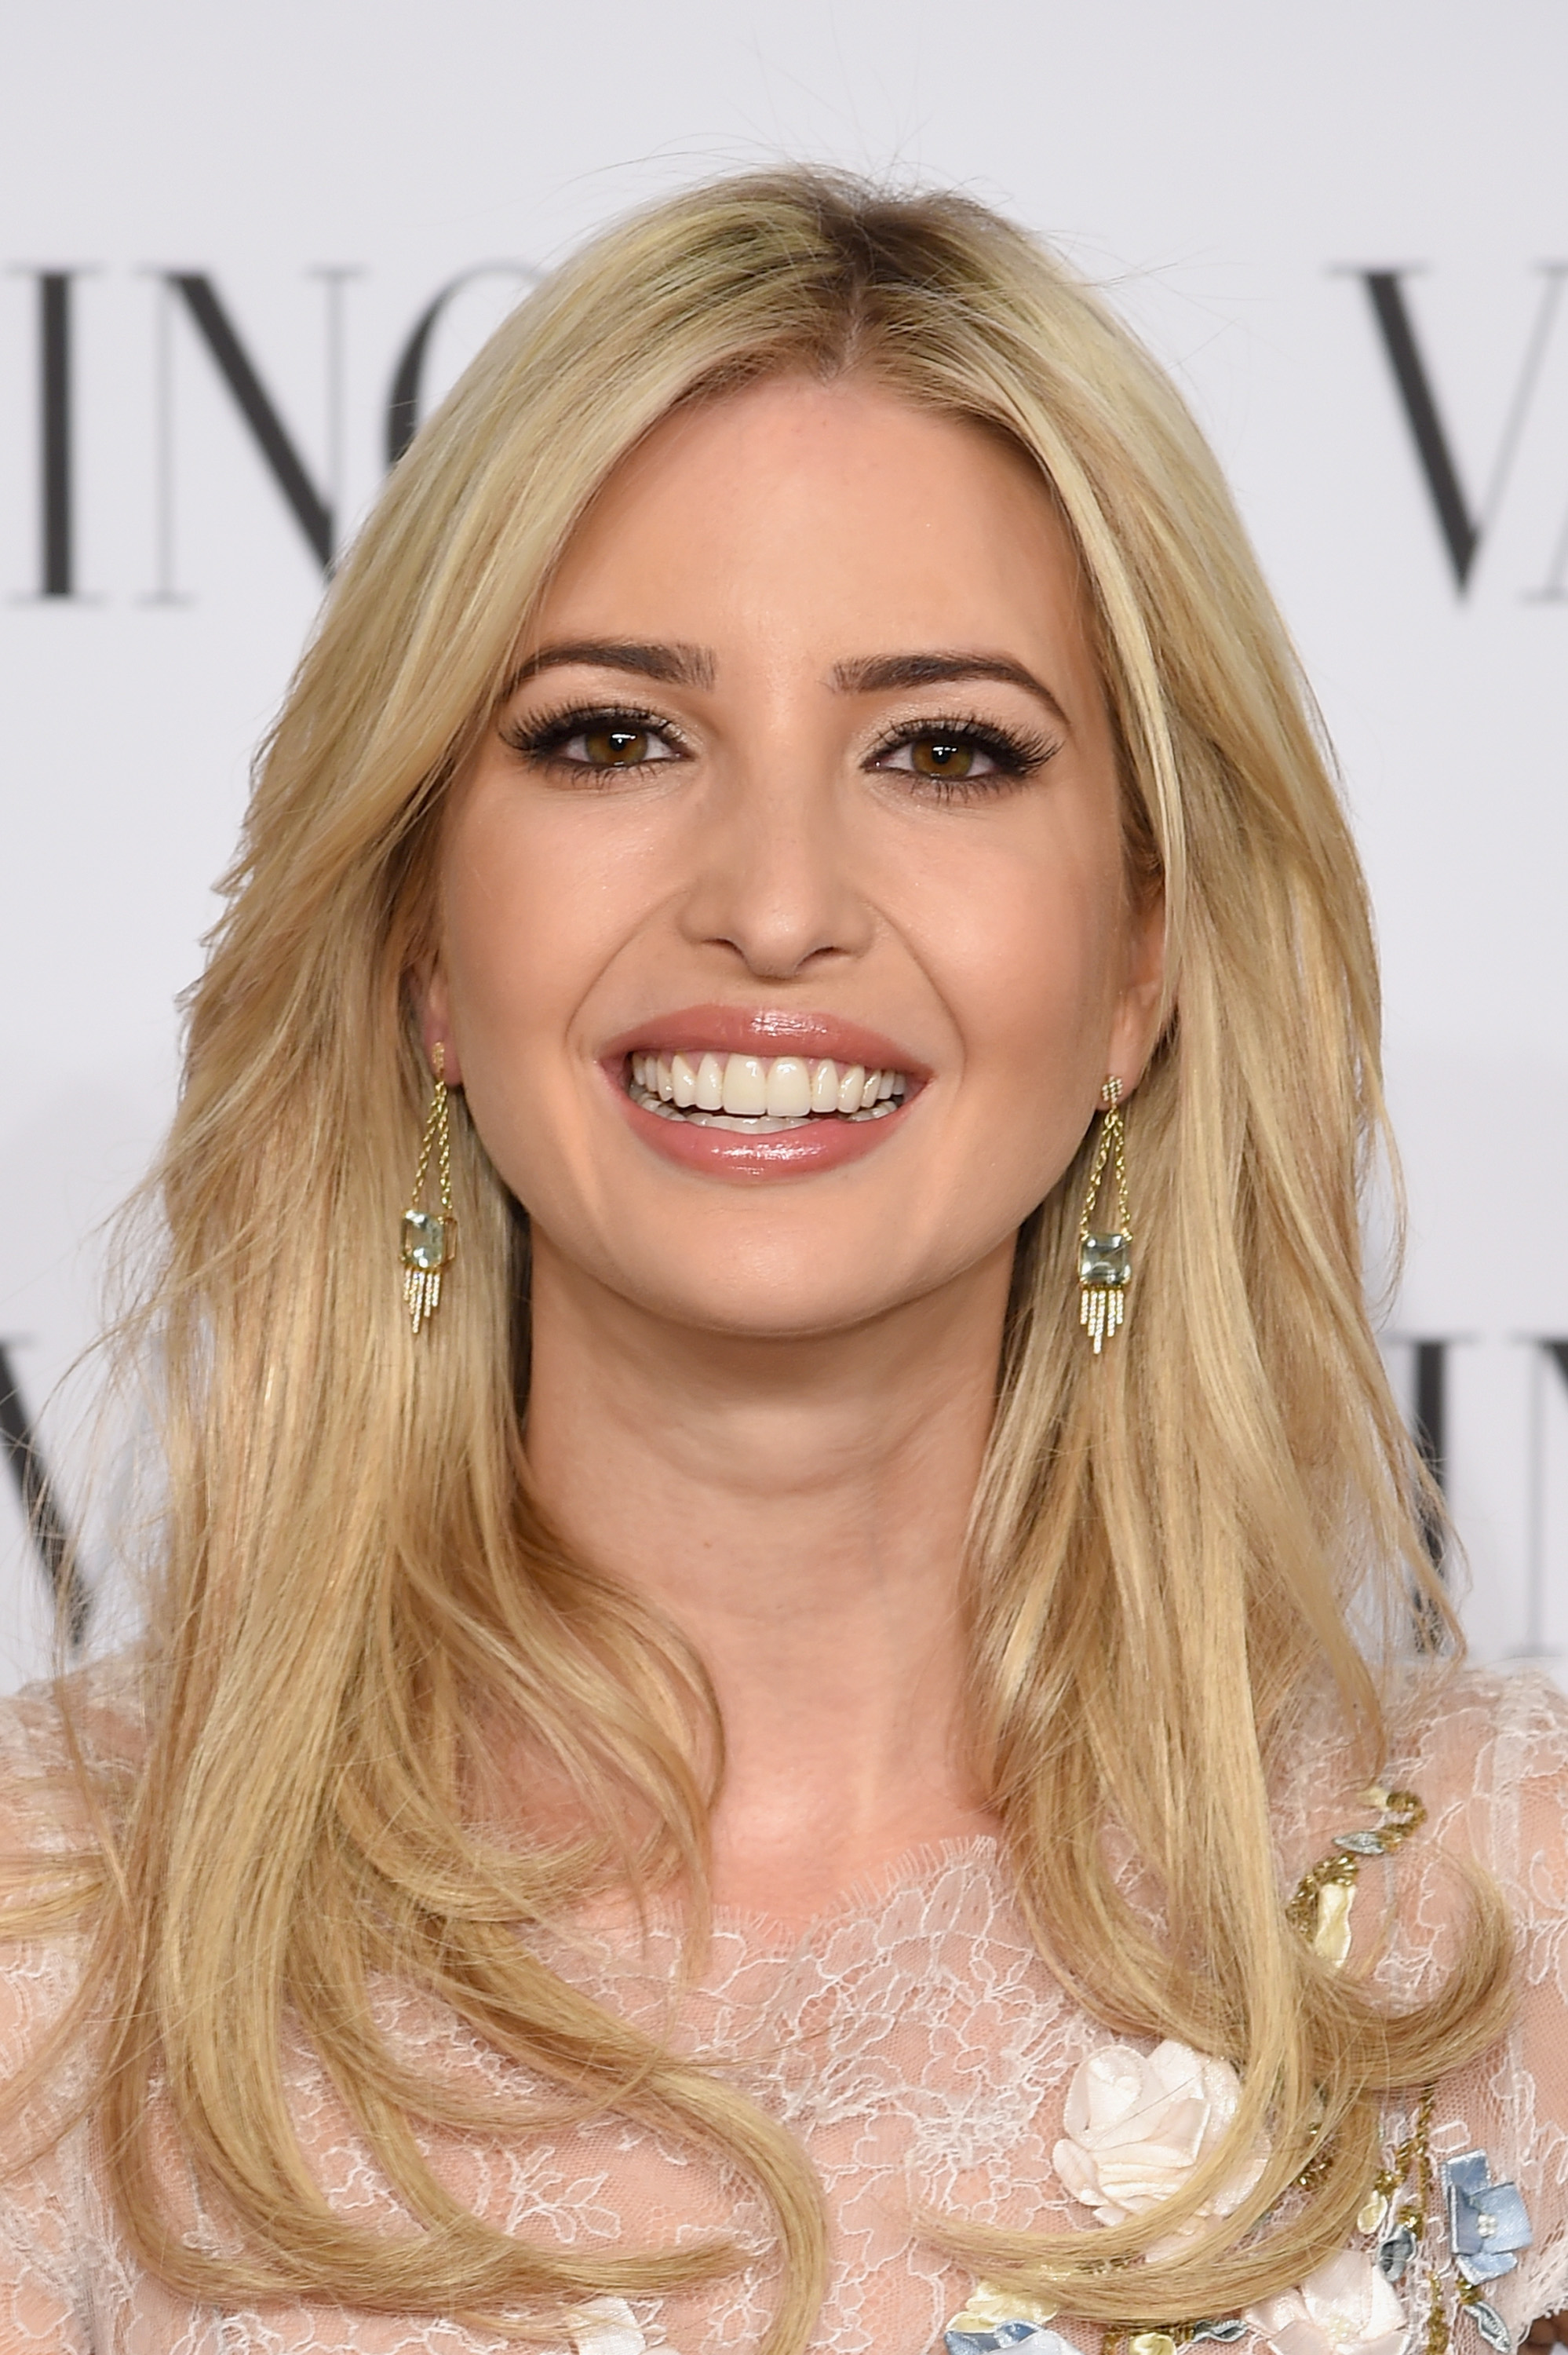 Ivanka Trump at the Valentino Sala Bianca 945 Event on Dec. 10, 2014 in New York City.